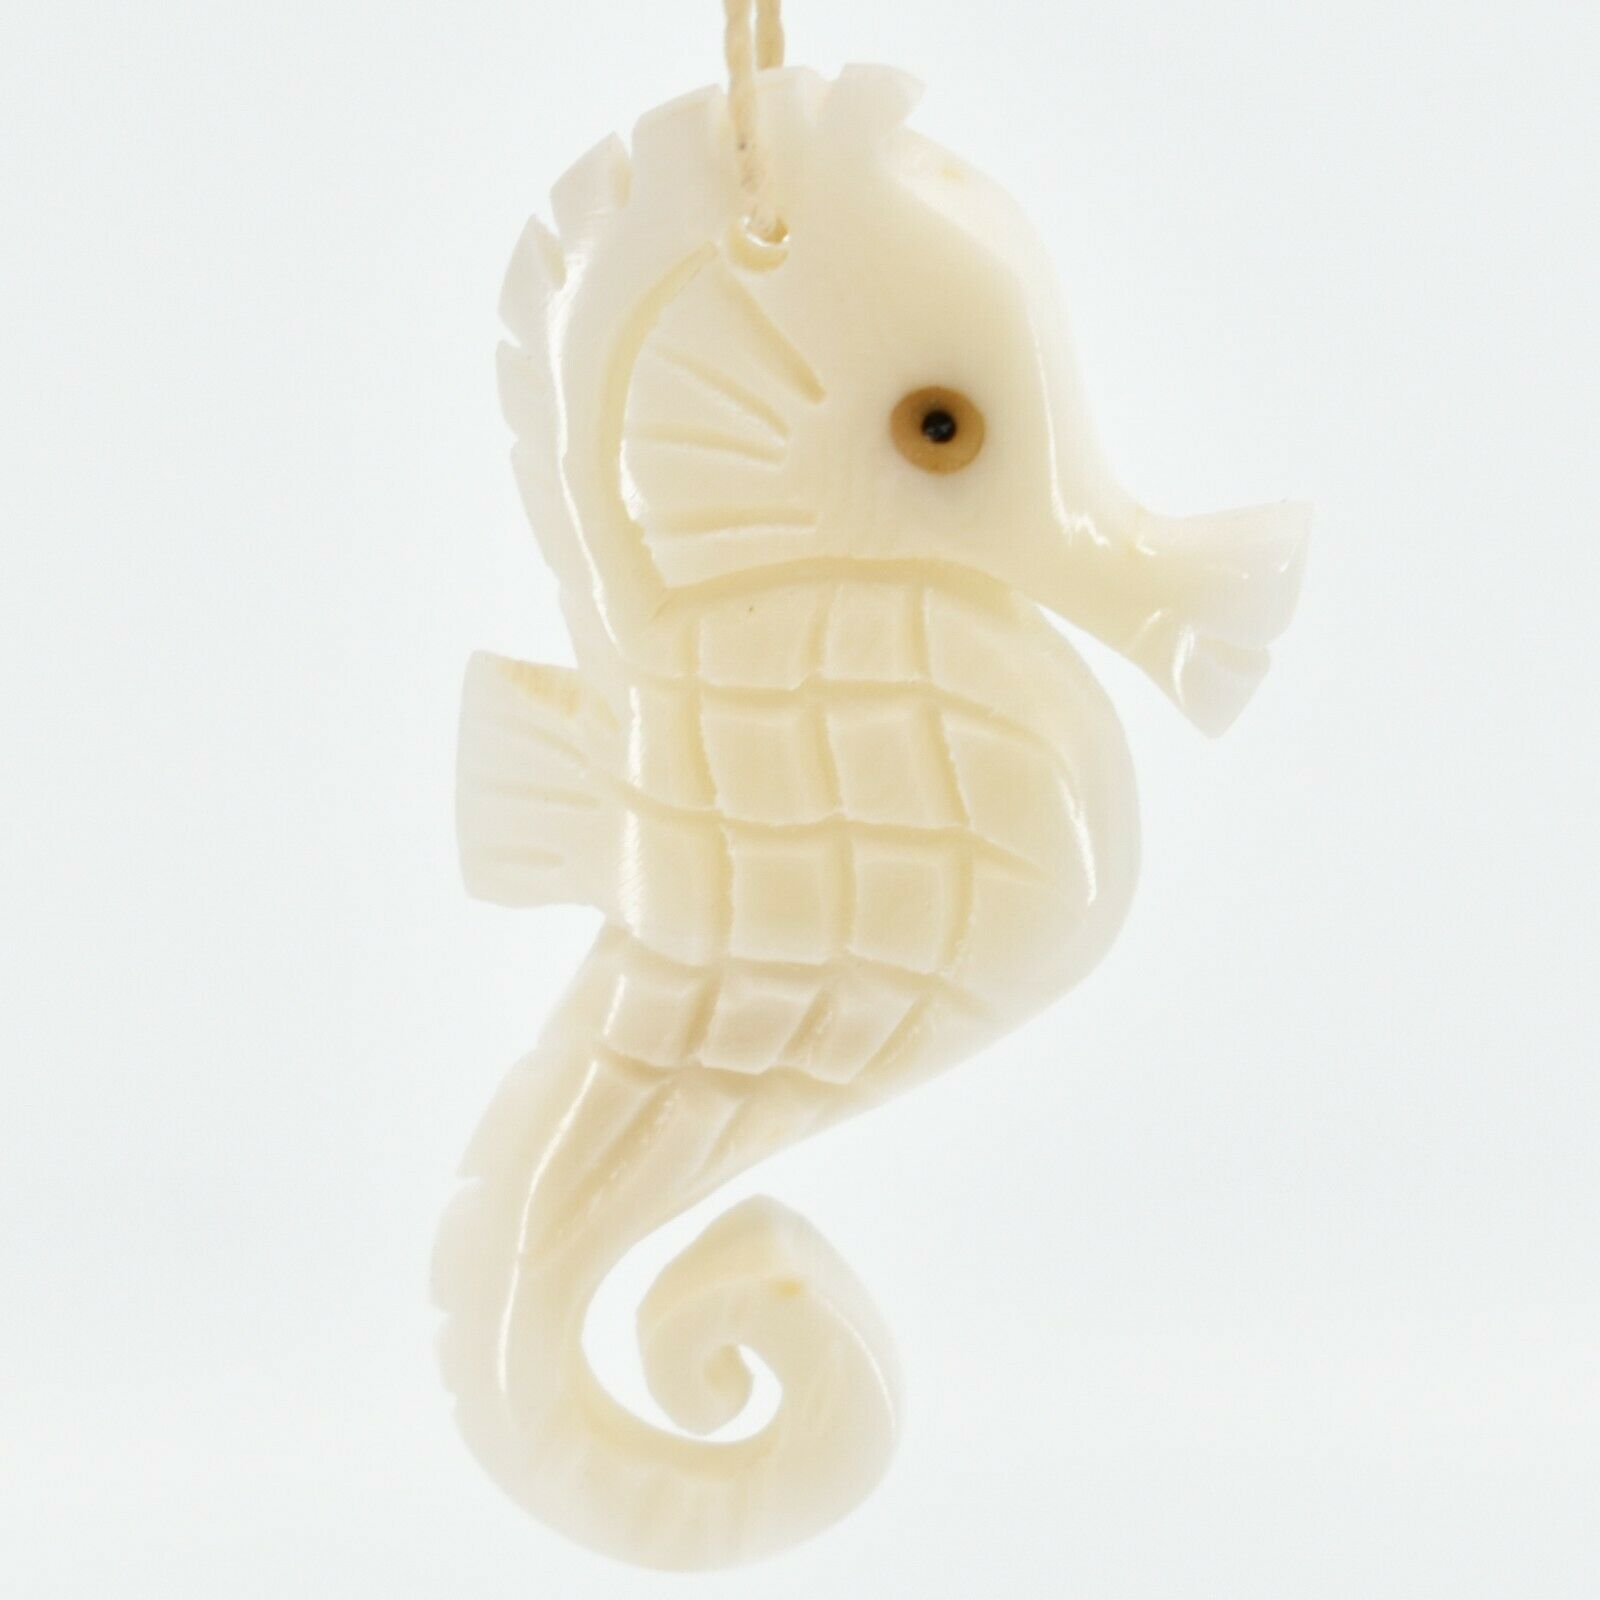 Hand Carved Tagua Nut Carving Seahorse Marine Life Ornament Made in Ecuador